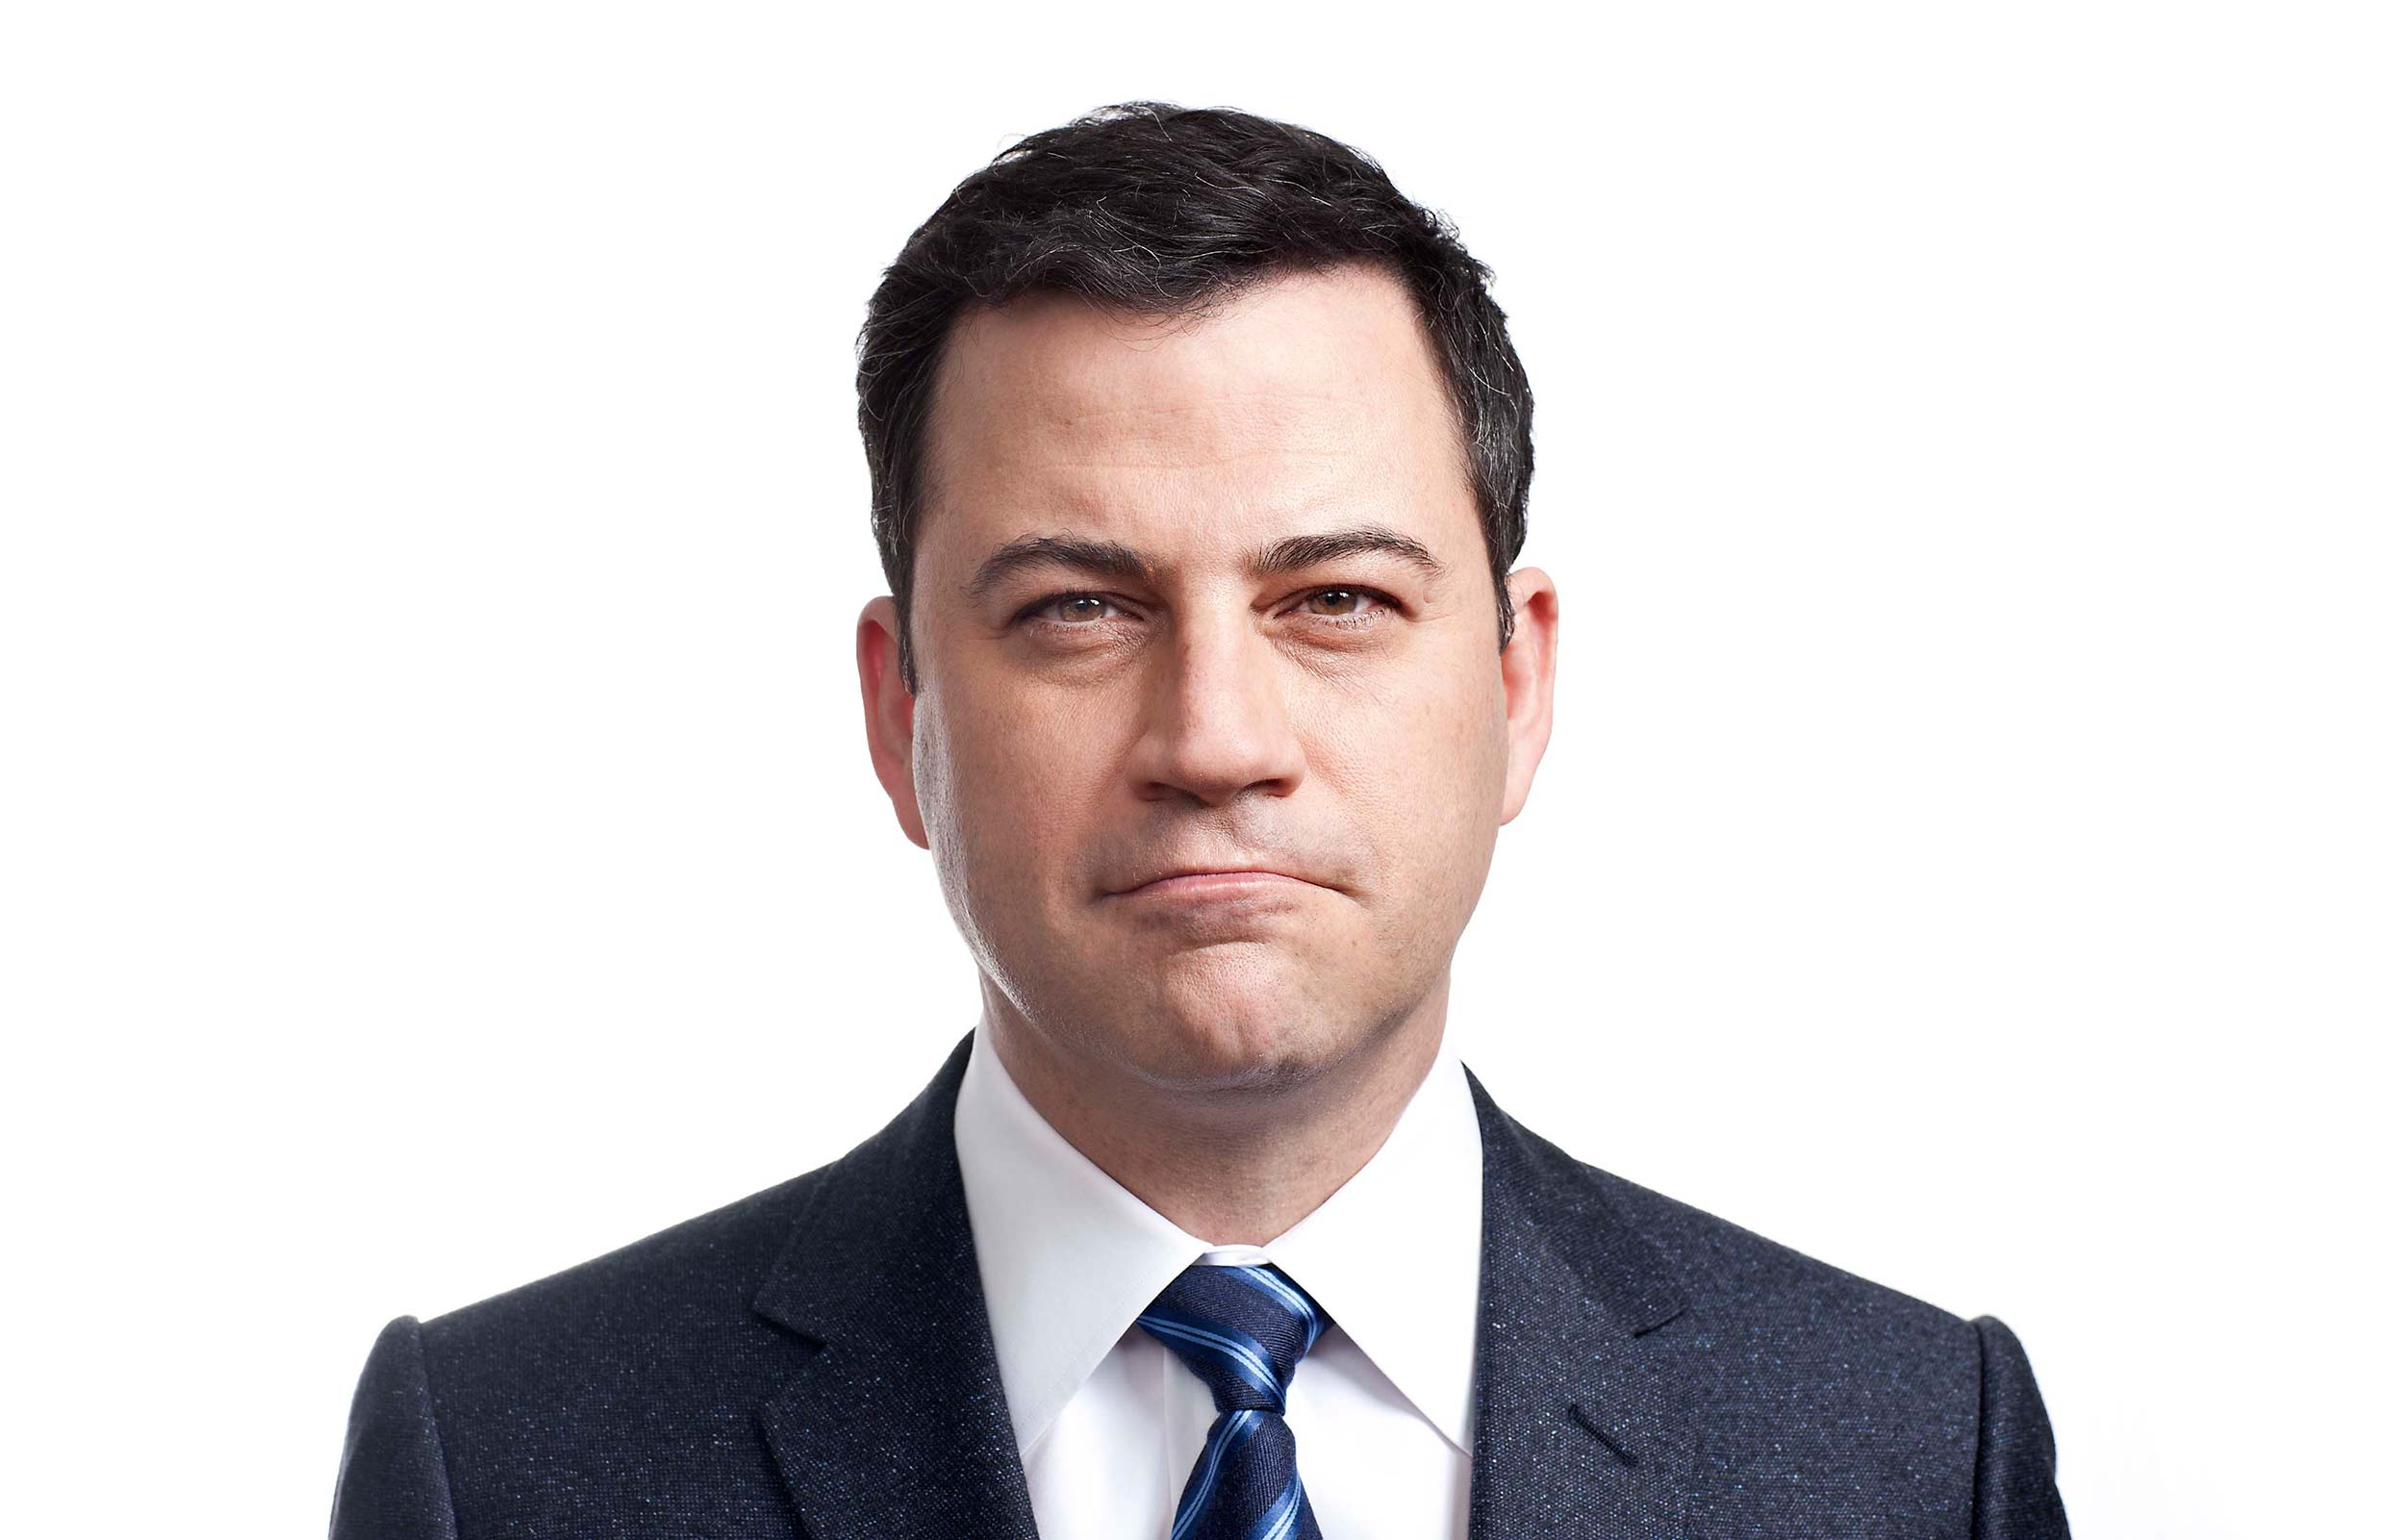 007_ENTMixed_GQ_Jimmy_Kimmel-2682_flat